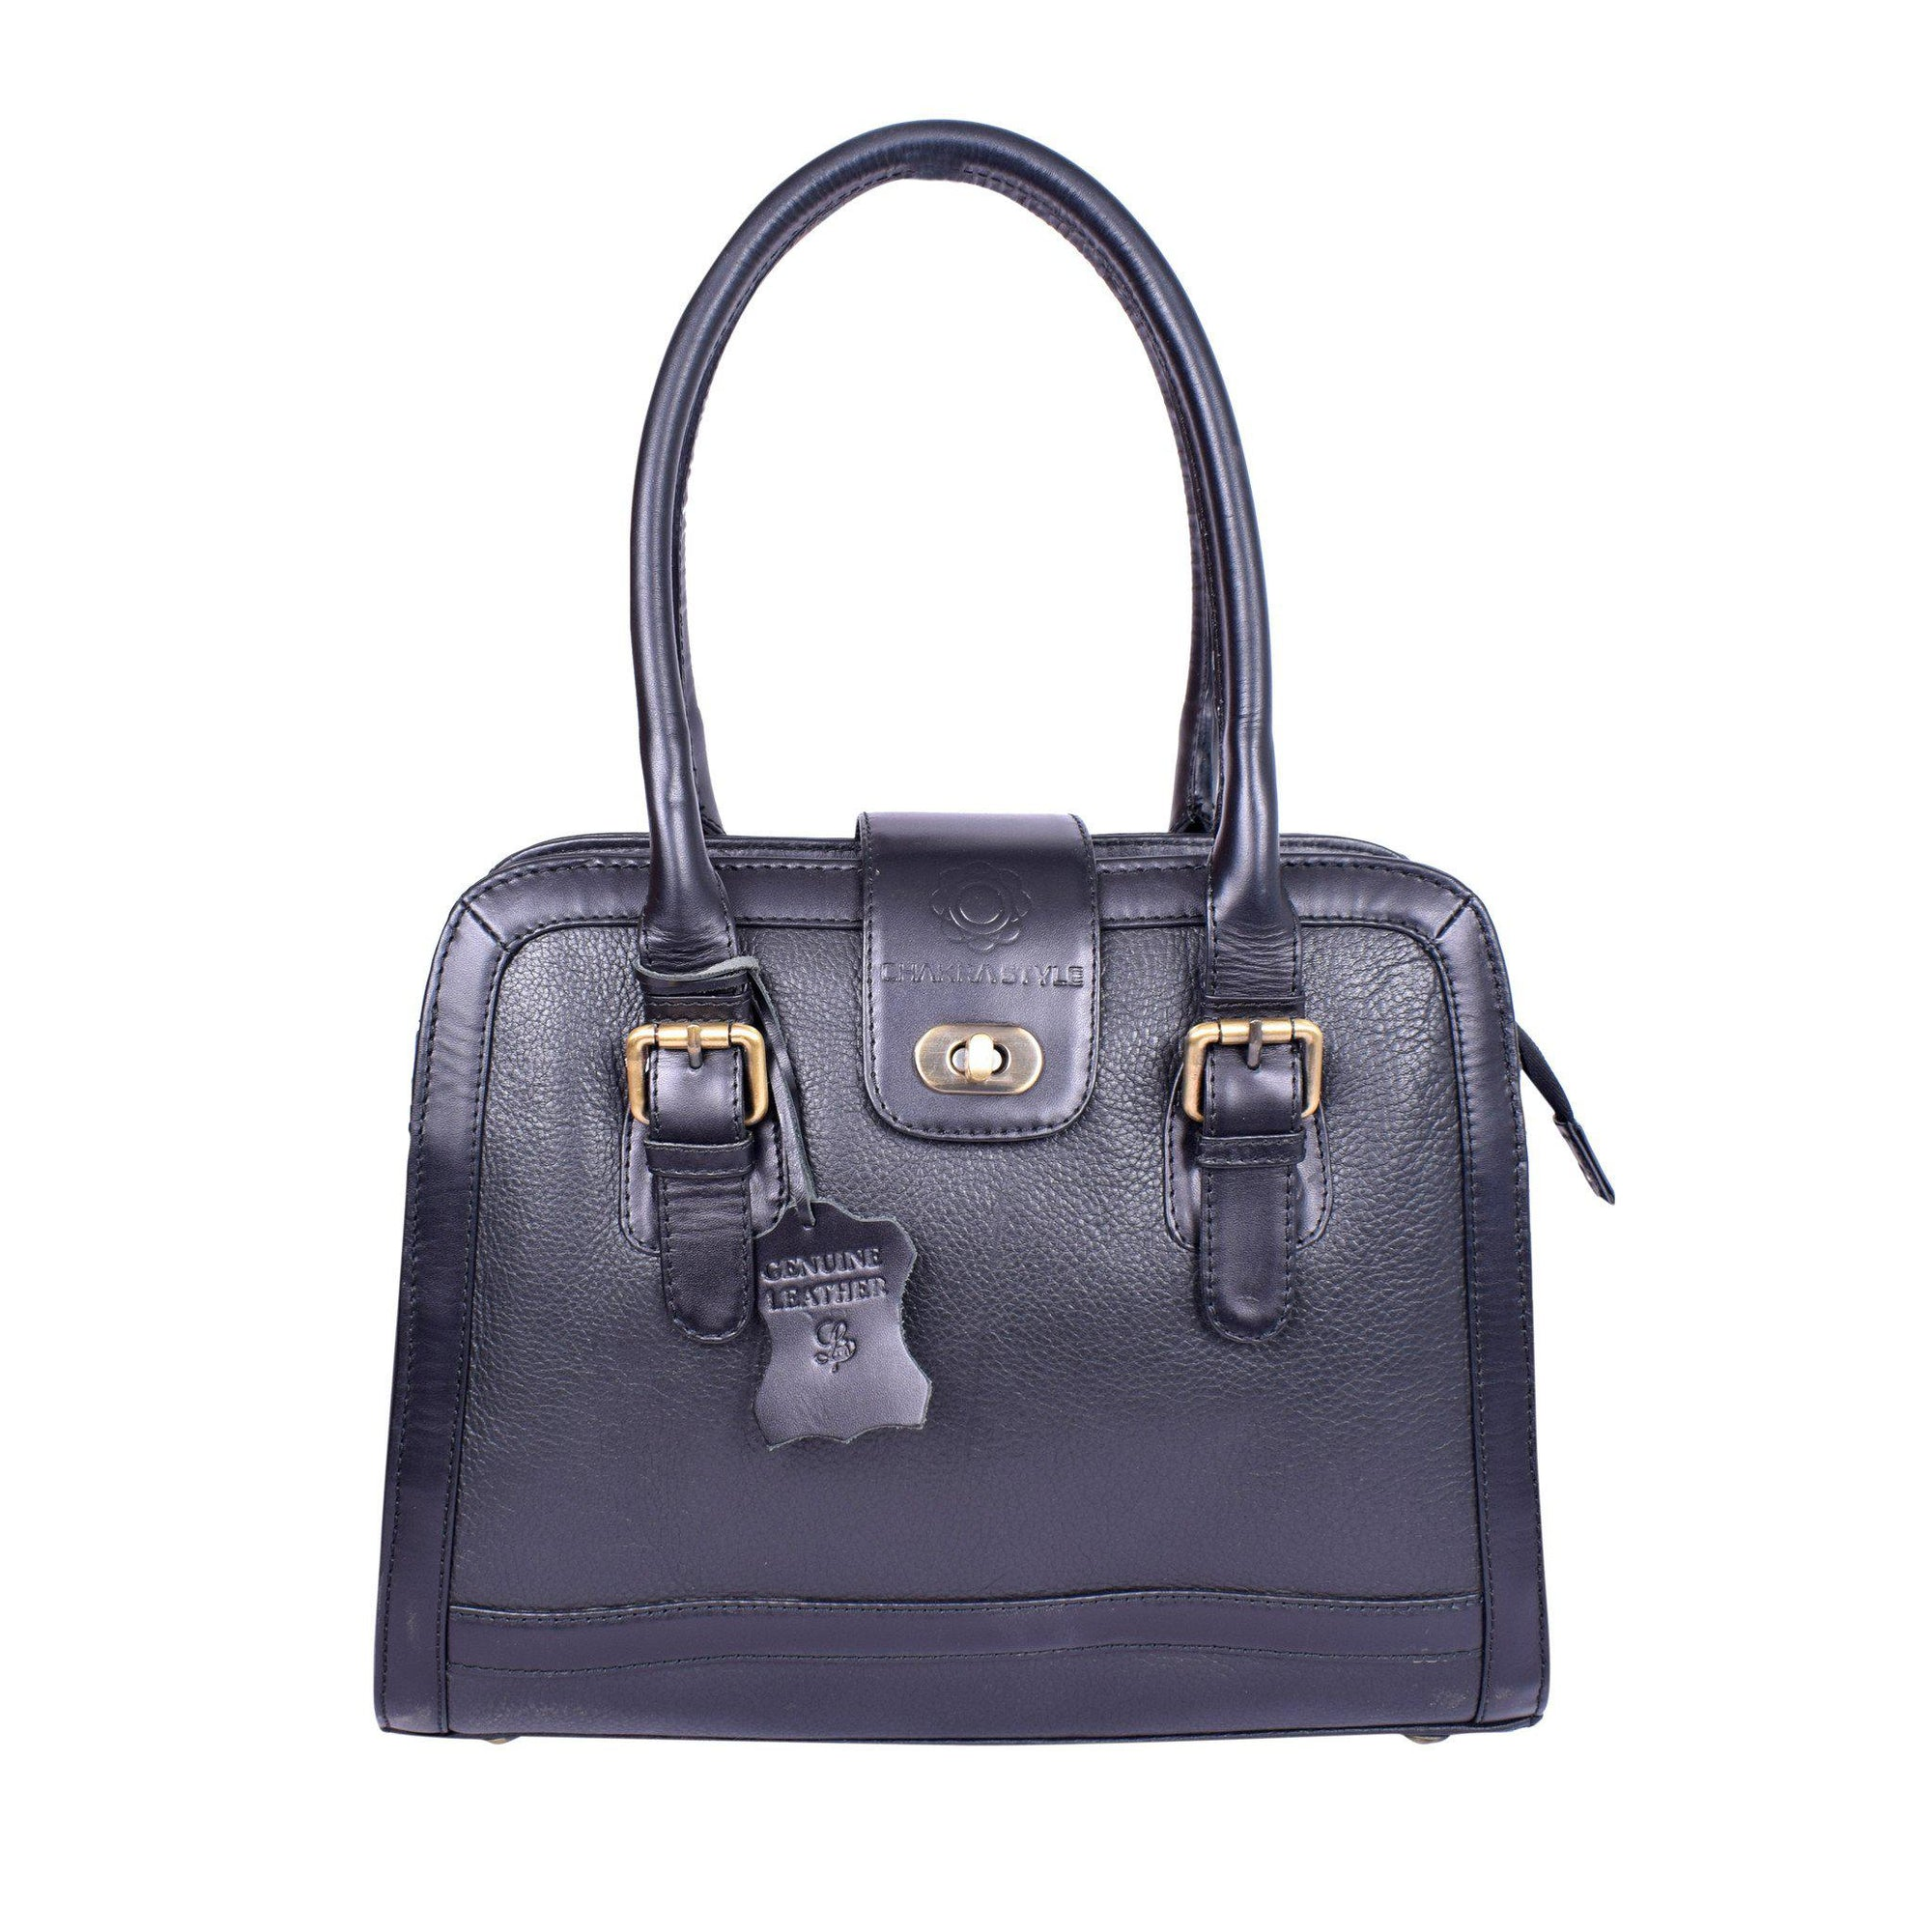 Royal Elegant Black Stylish Flap Lock Bag.